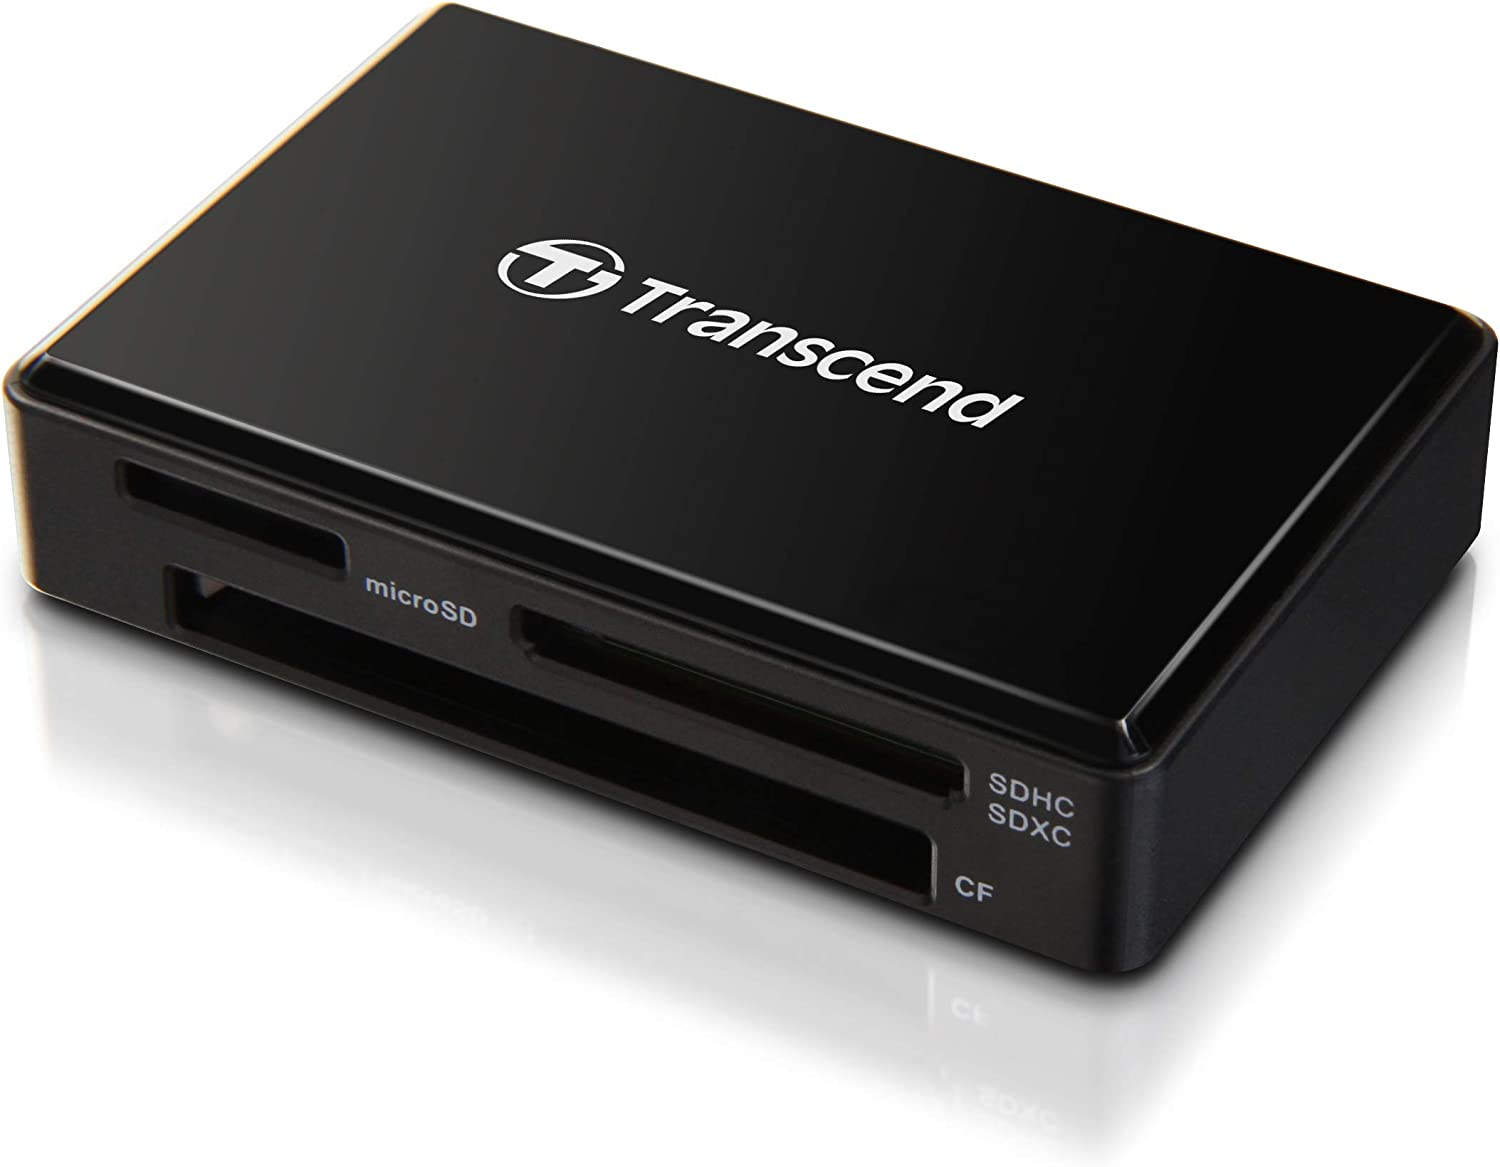 Transcend USB 3.0 Super Speed Multi-Card Reader for SD/SDHC/SDXC/MS/CF Cards (TS-RDF8K),Black